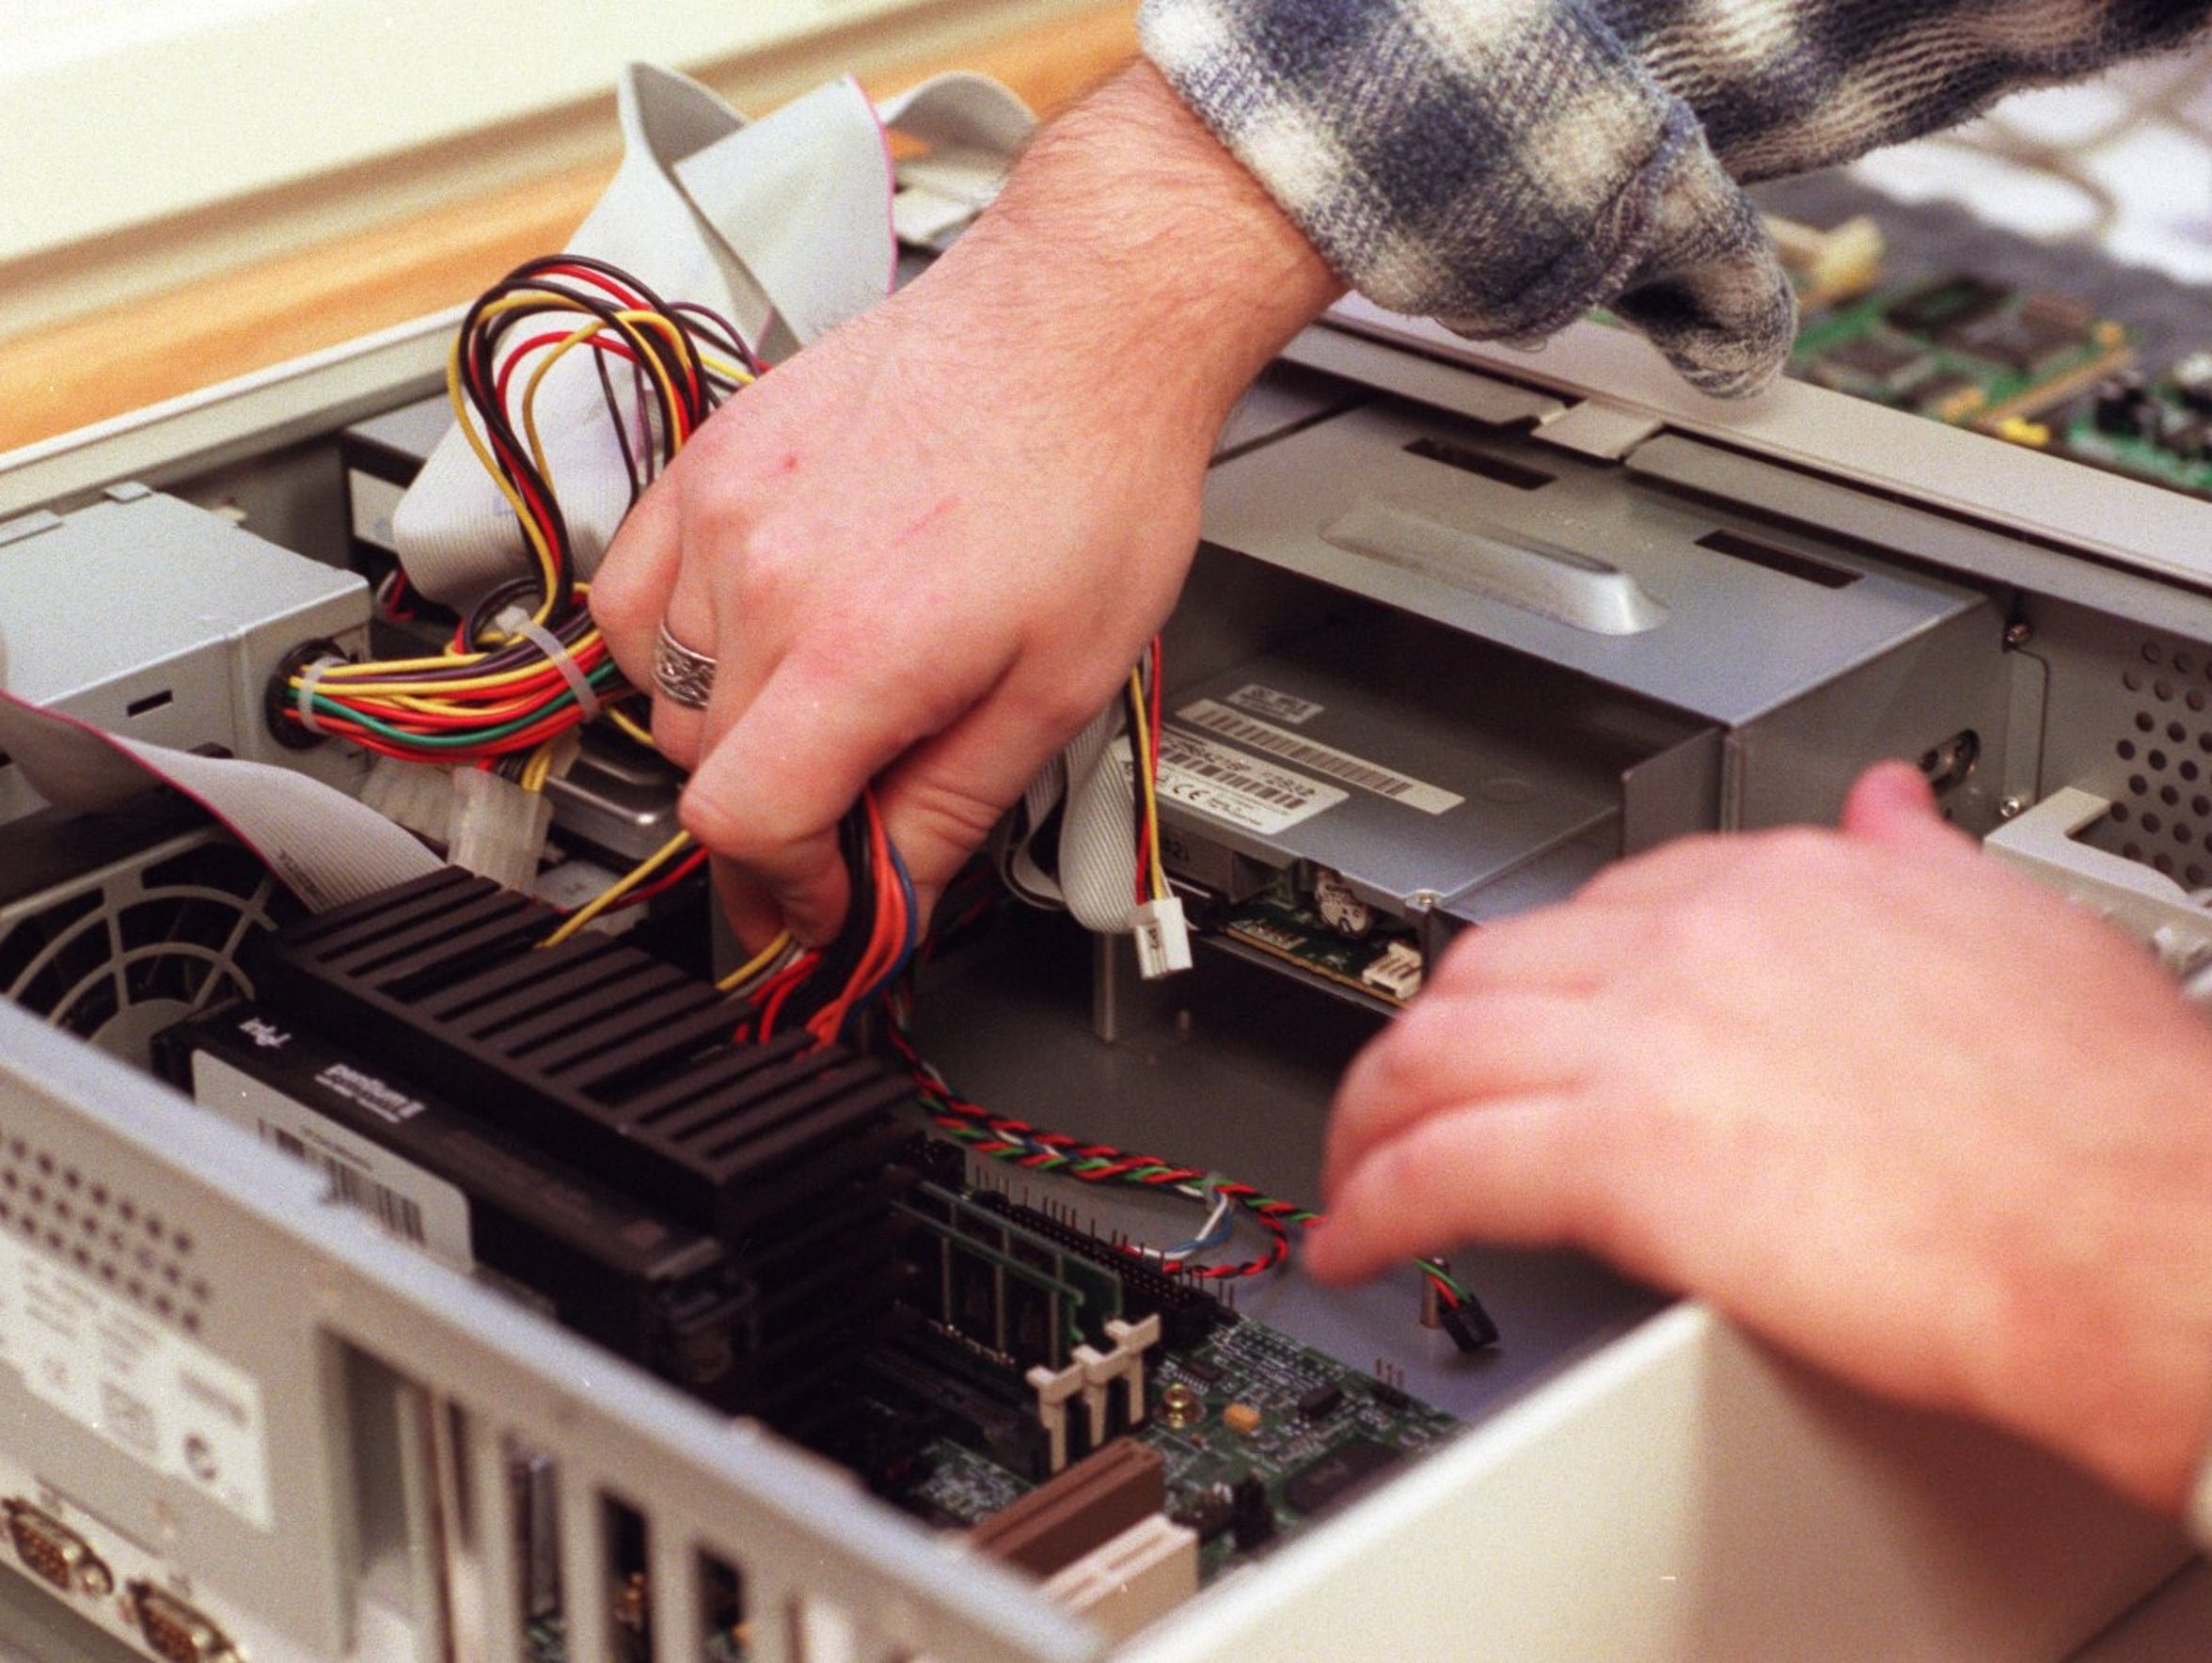 In this file photo, Eric Means updates the bios chip